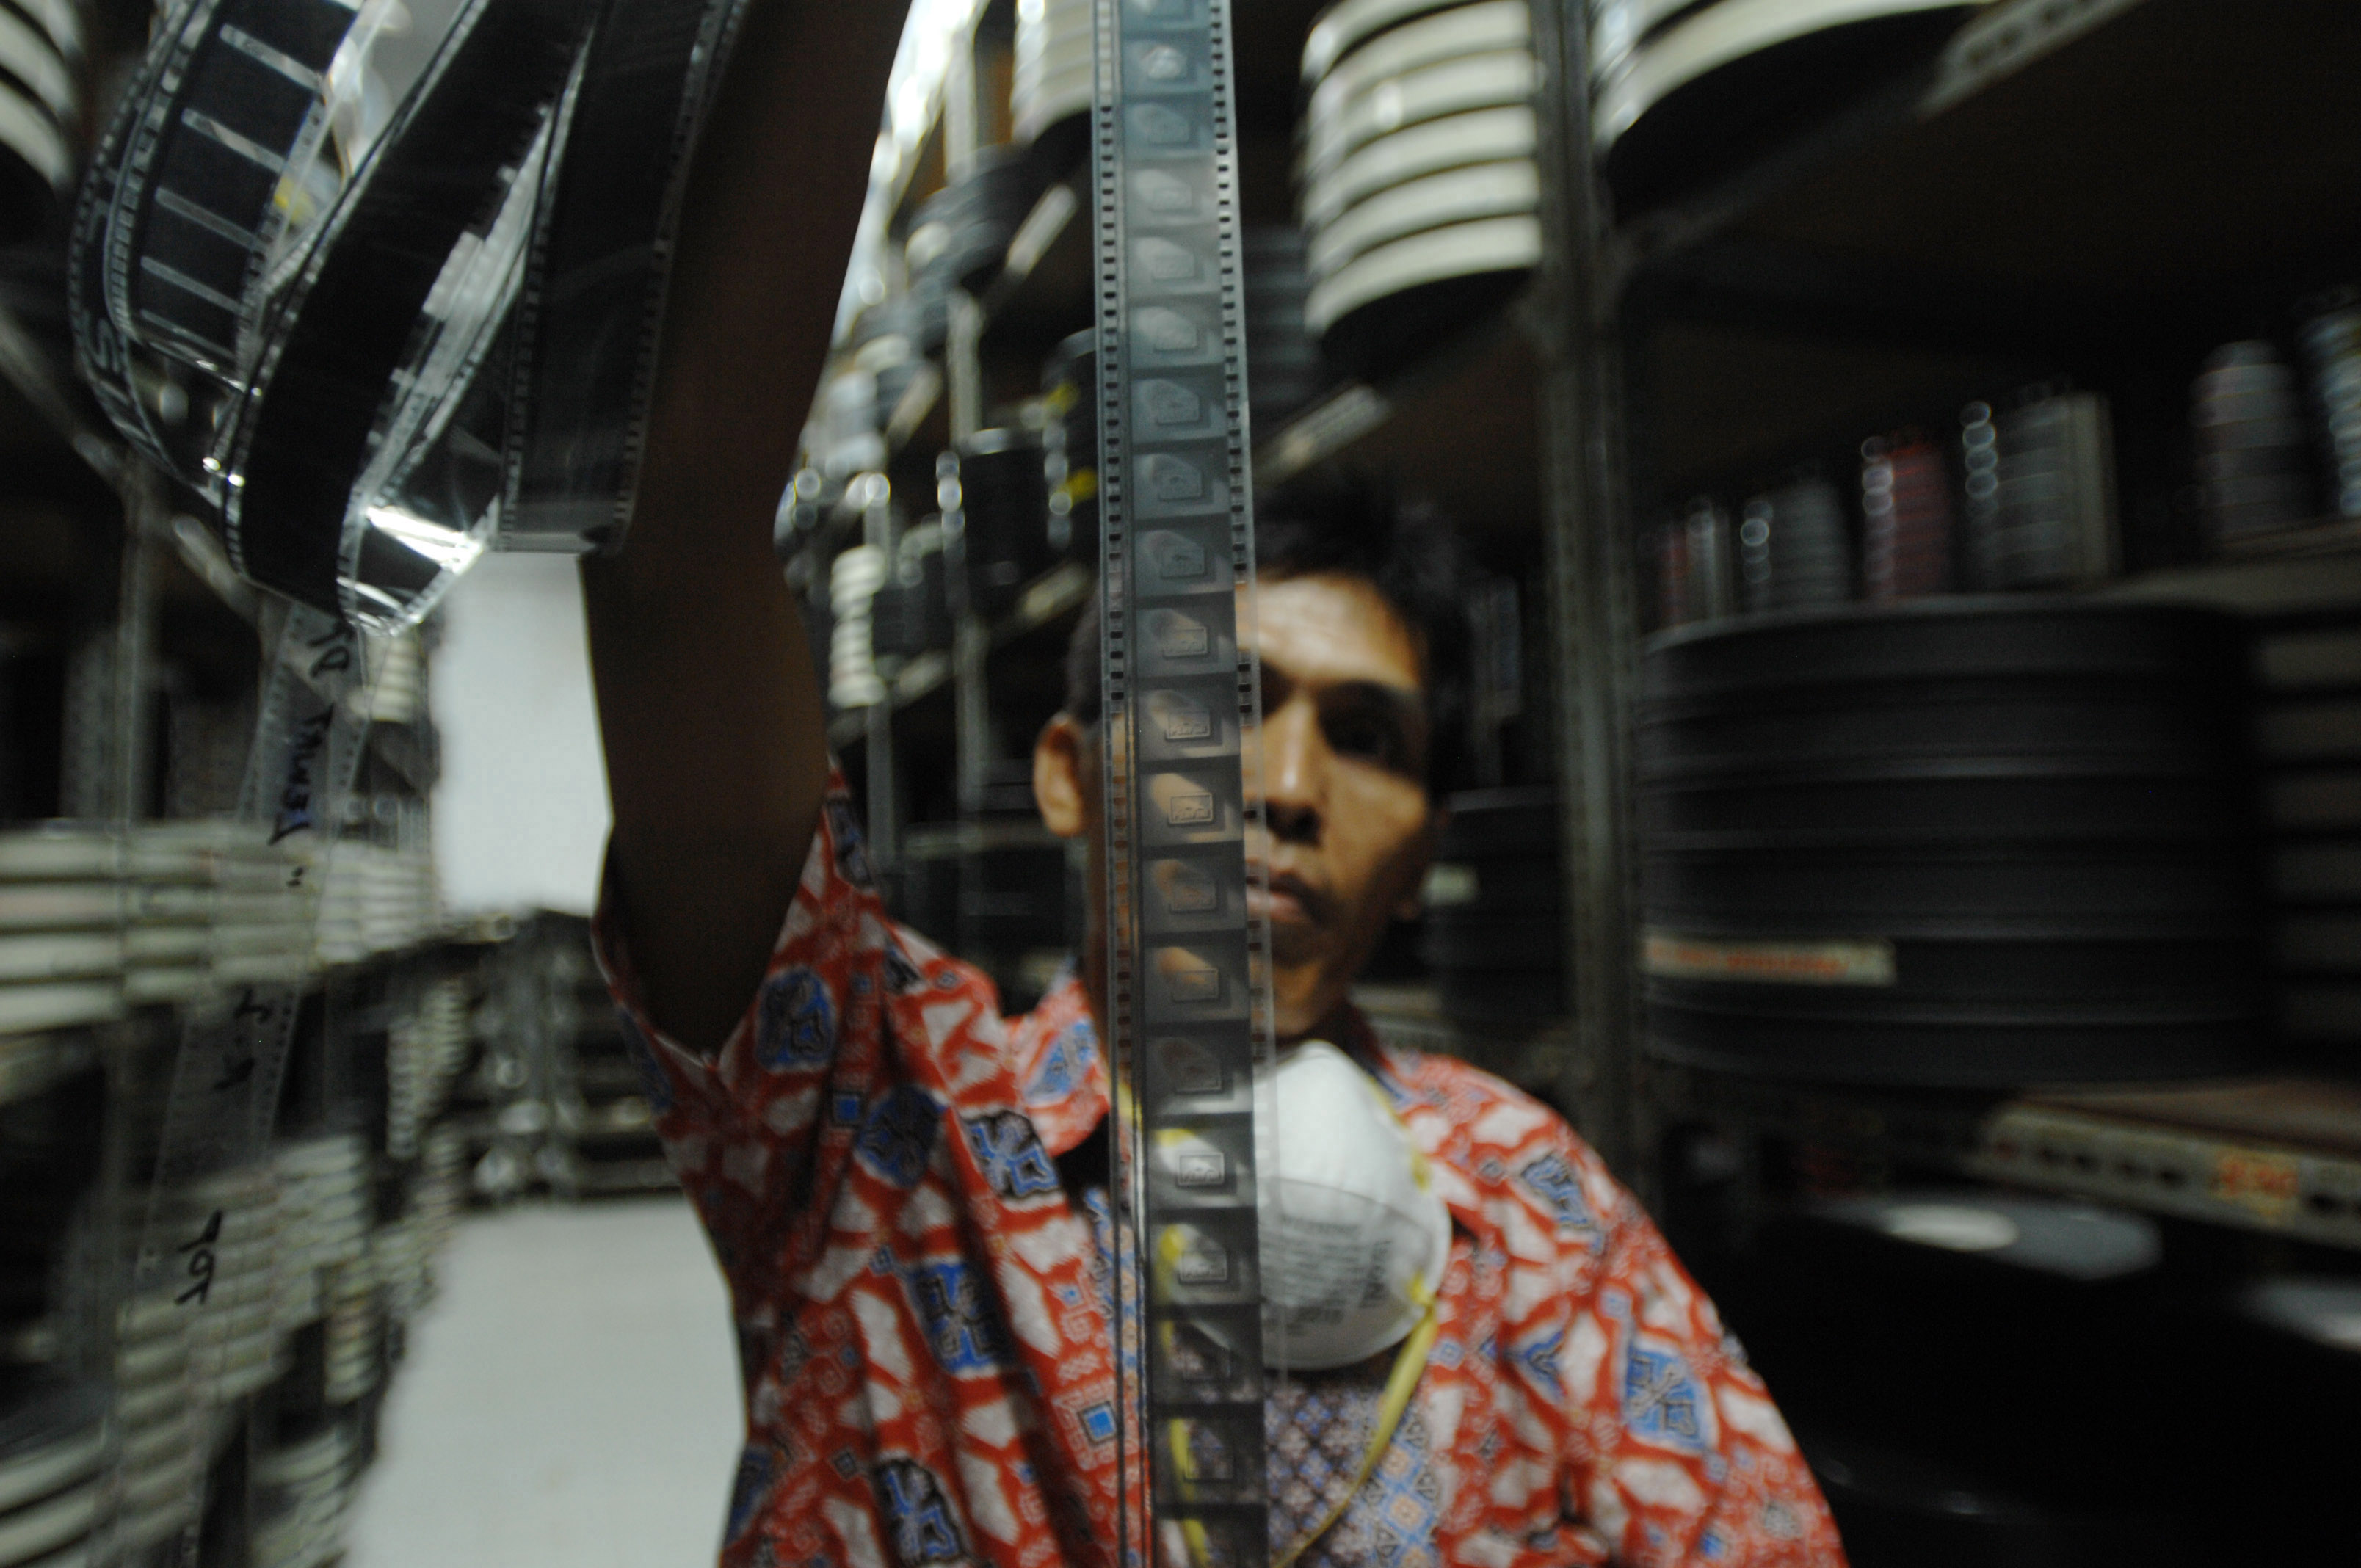 A film archivist holds up a film roll in the storage room at the Usmar Ismail Building in Jakarta, Indonesia on Oct. 28, 2016.